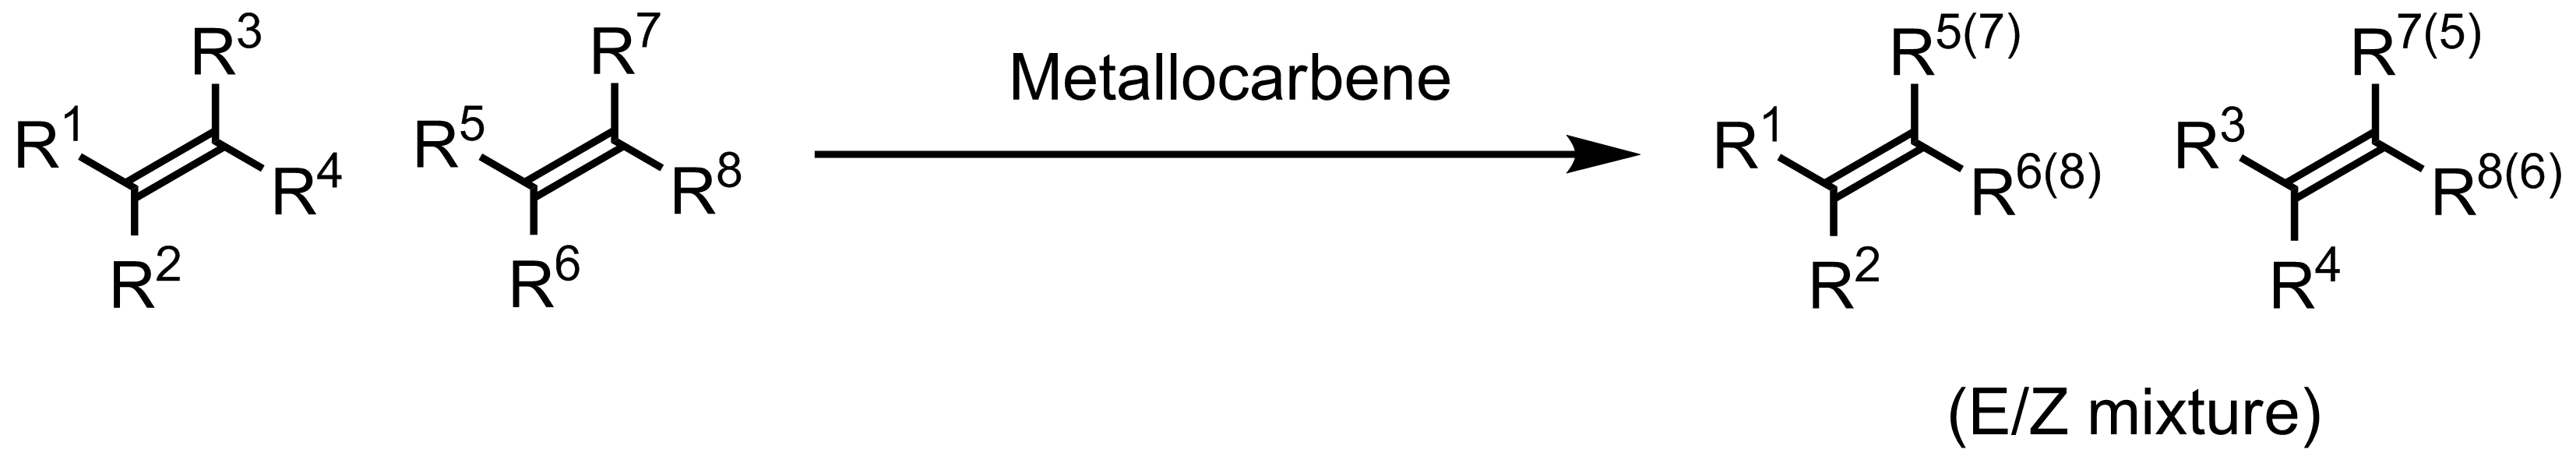 Schematic representation of the Olefin Metathesis.